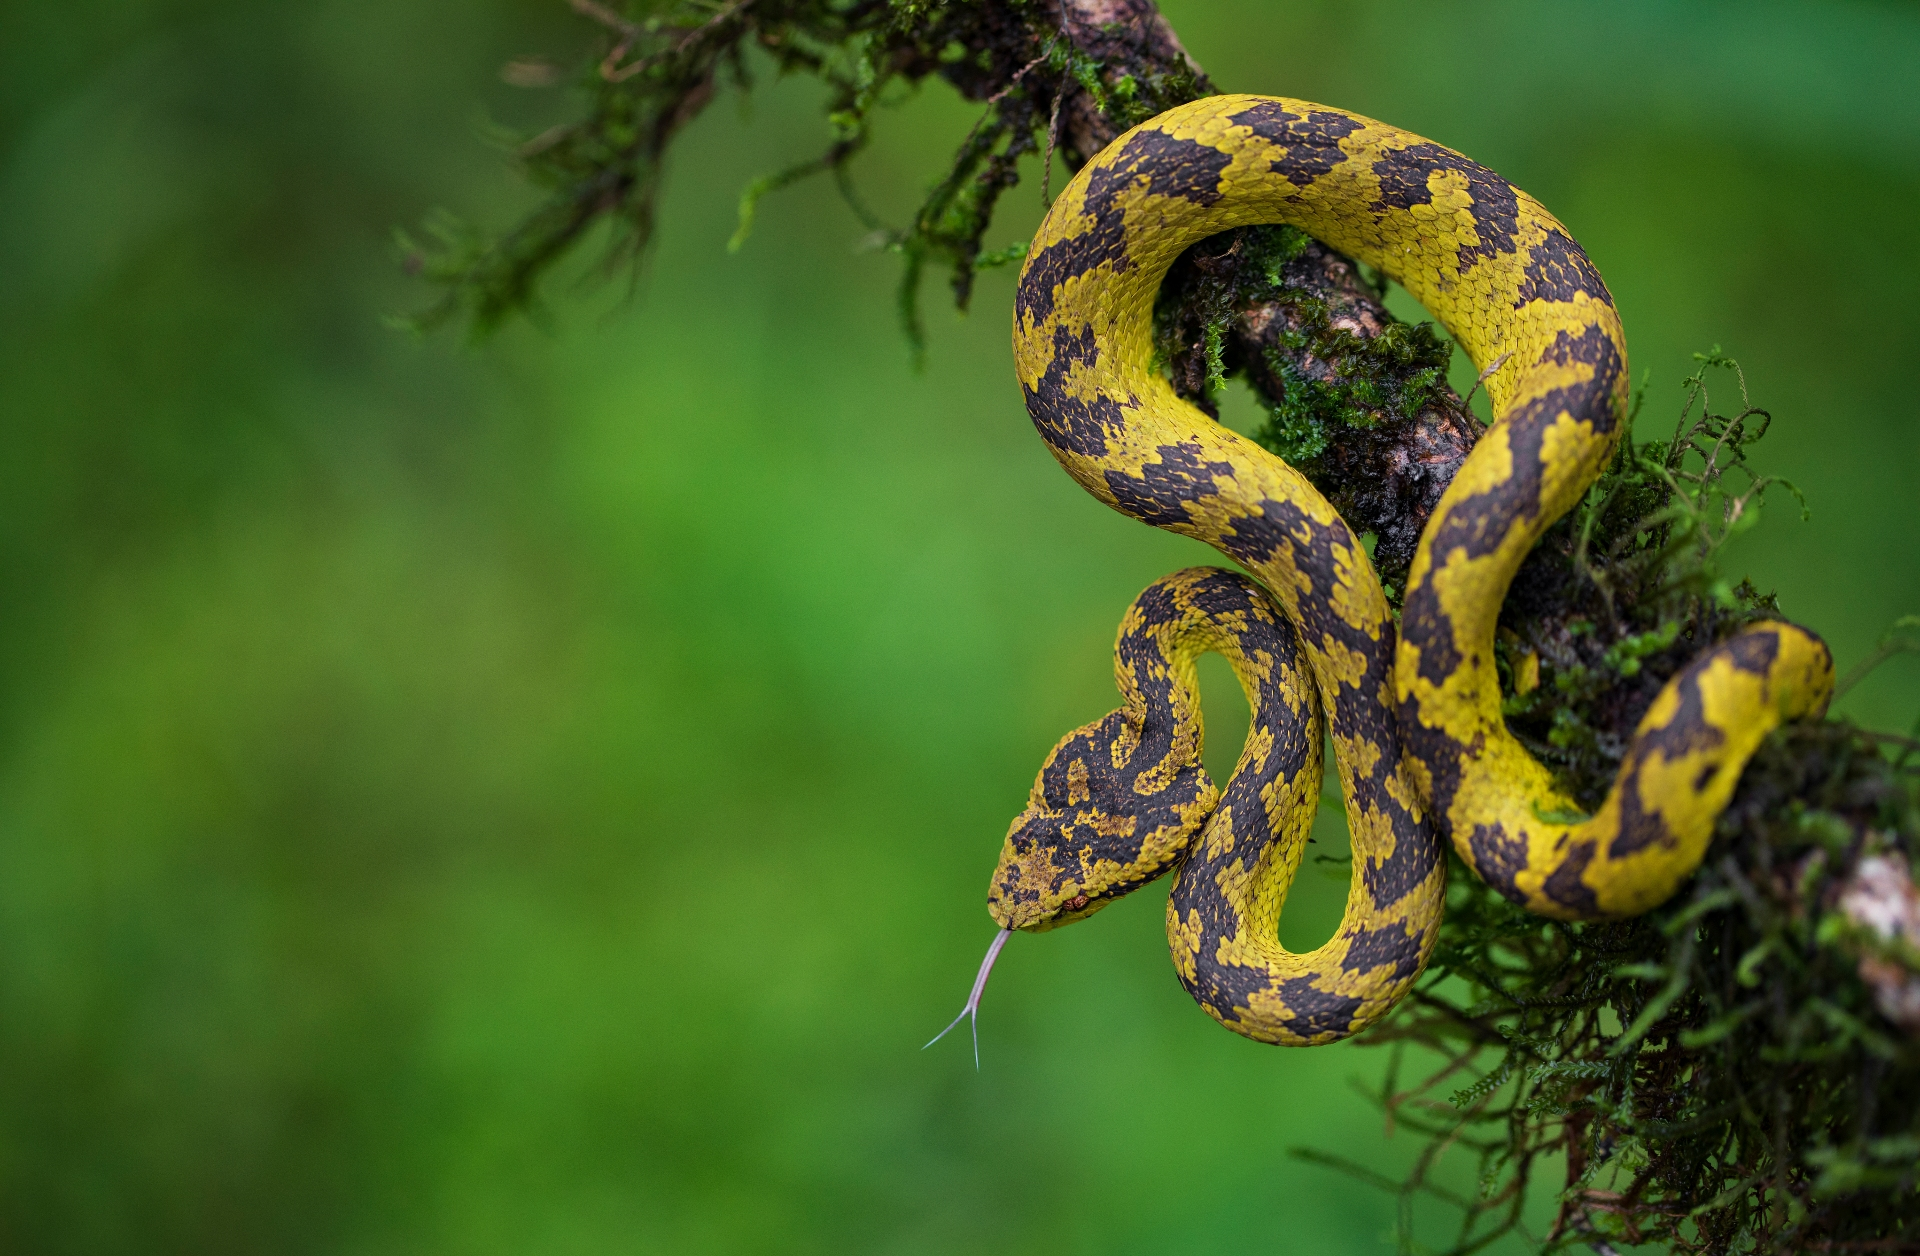 Malabar pit vipers are known to occur in many colour morphs. Green, brown, and a mix of green and brown are common, though yellow, orange, blue, even pink snakes have been photographed. This yellow viper was seen near Sirsi, Karnataka.  Photo: Uday Hegde